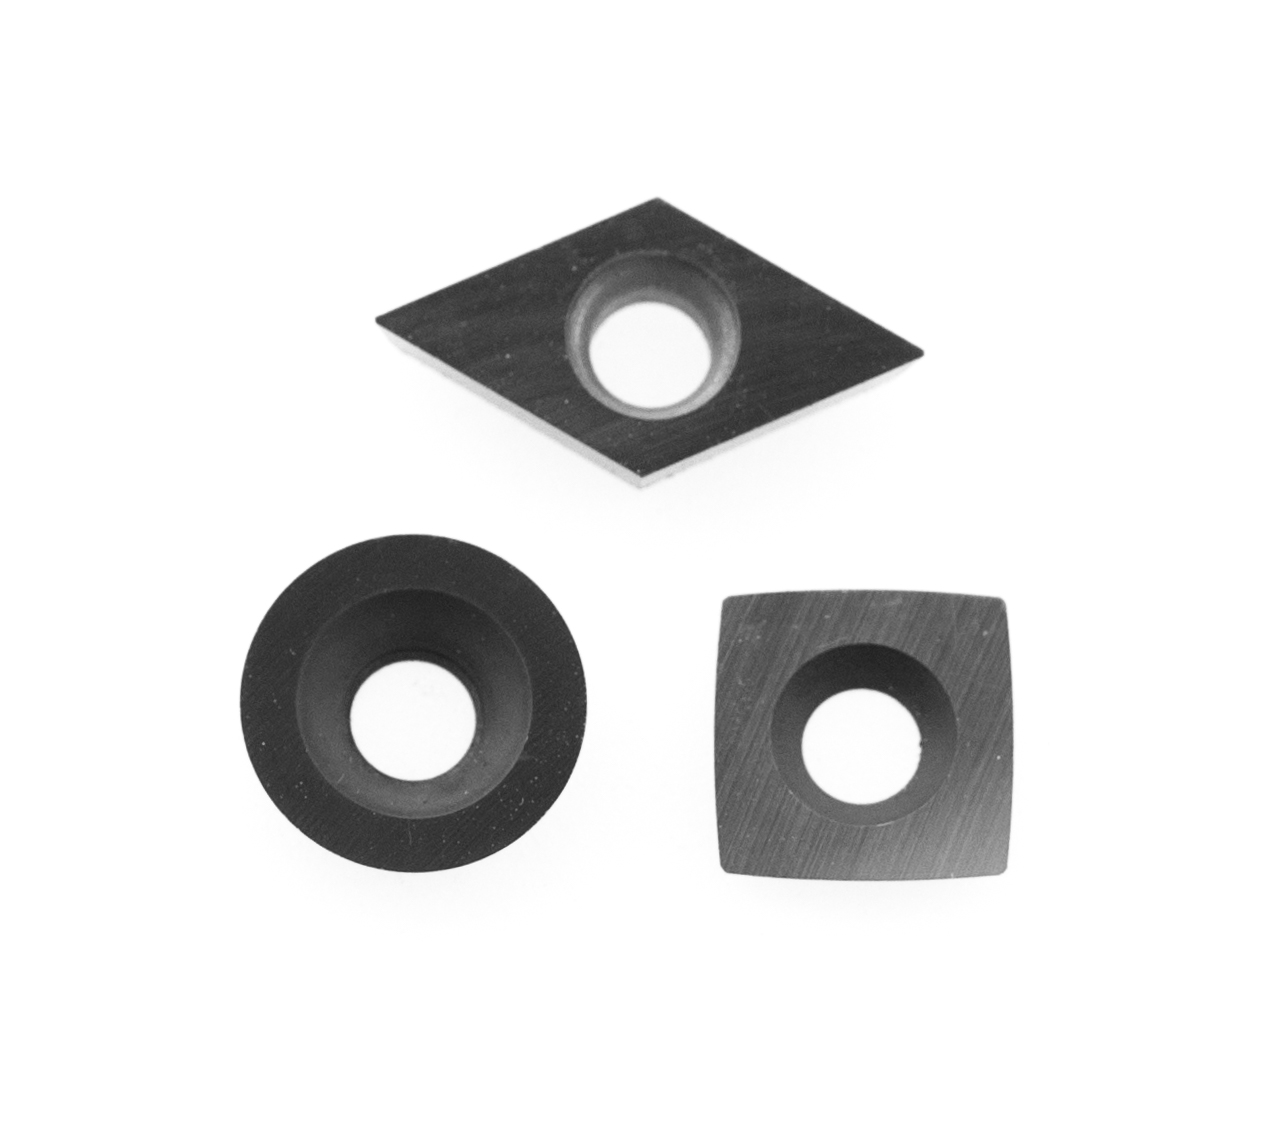 Replacement carbide cutters for simple start woodturning tools